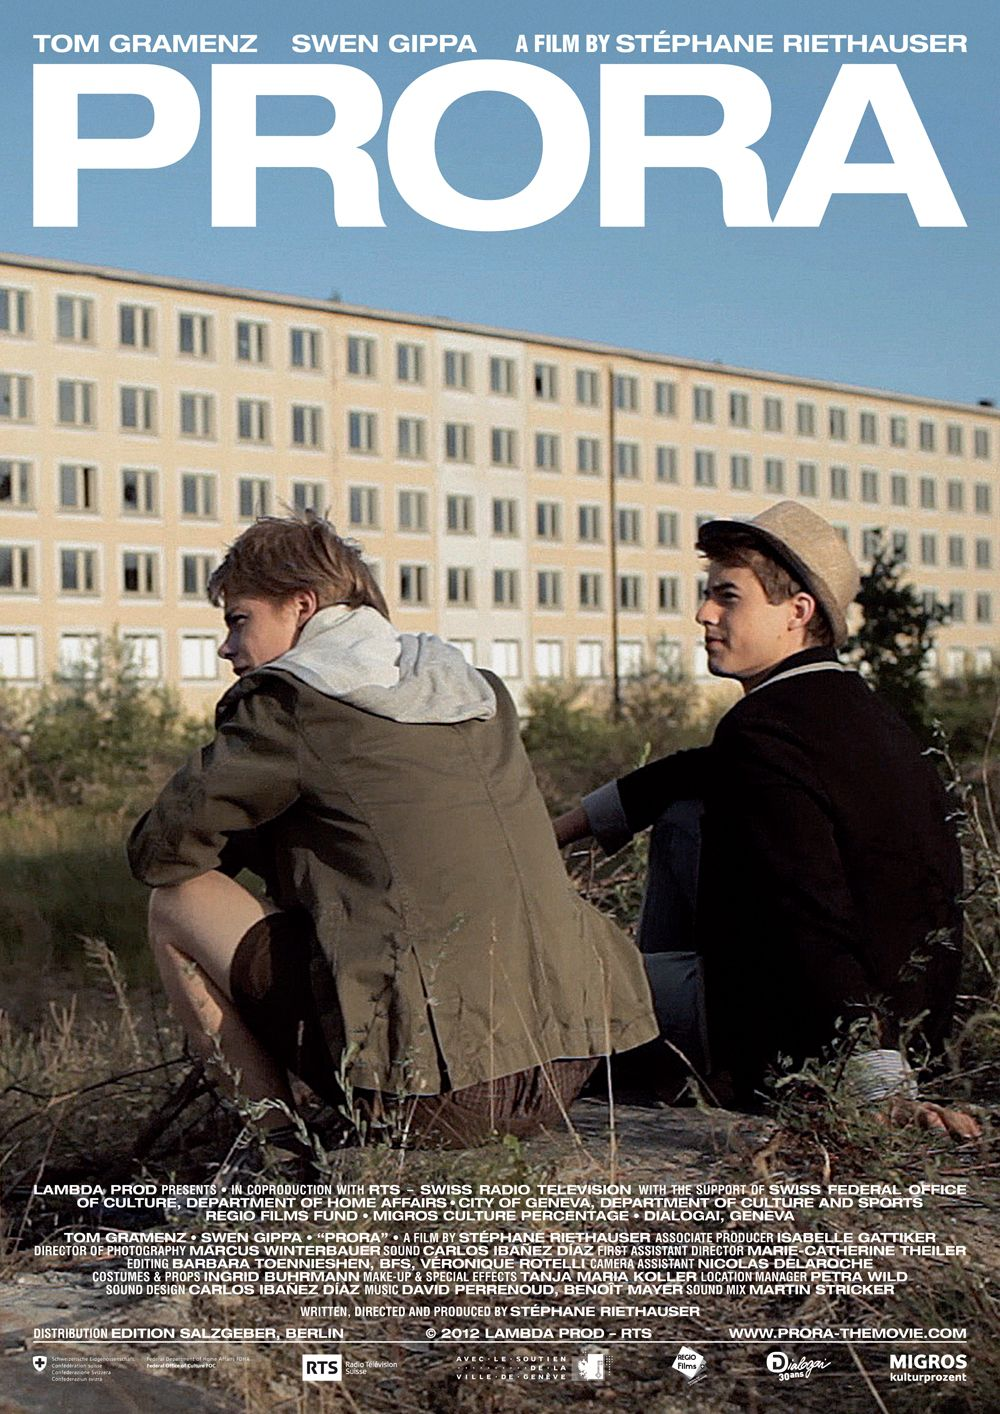 PRORA directed by Stéphane Riethauser #Outfest2012 #Shorts